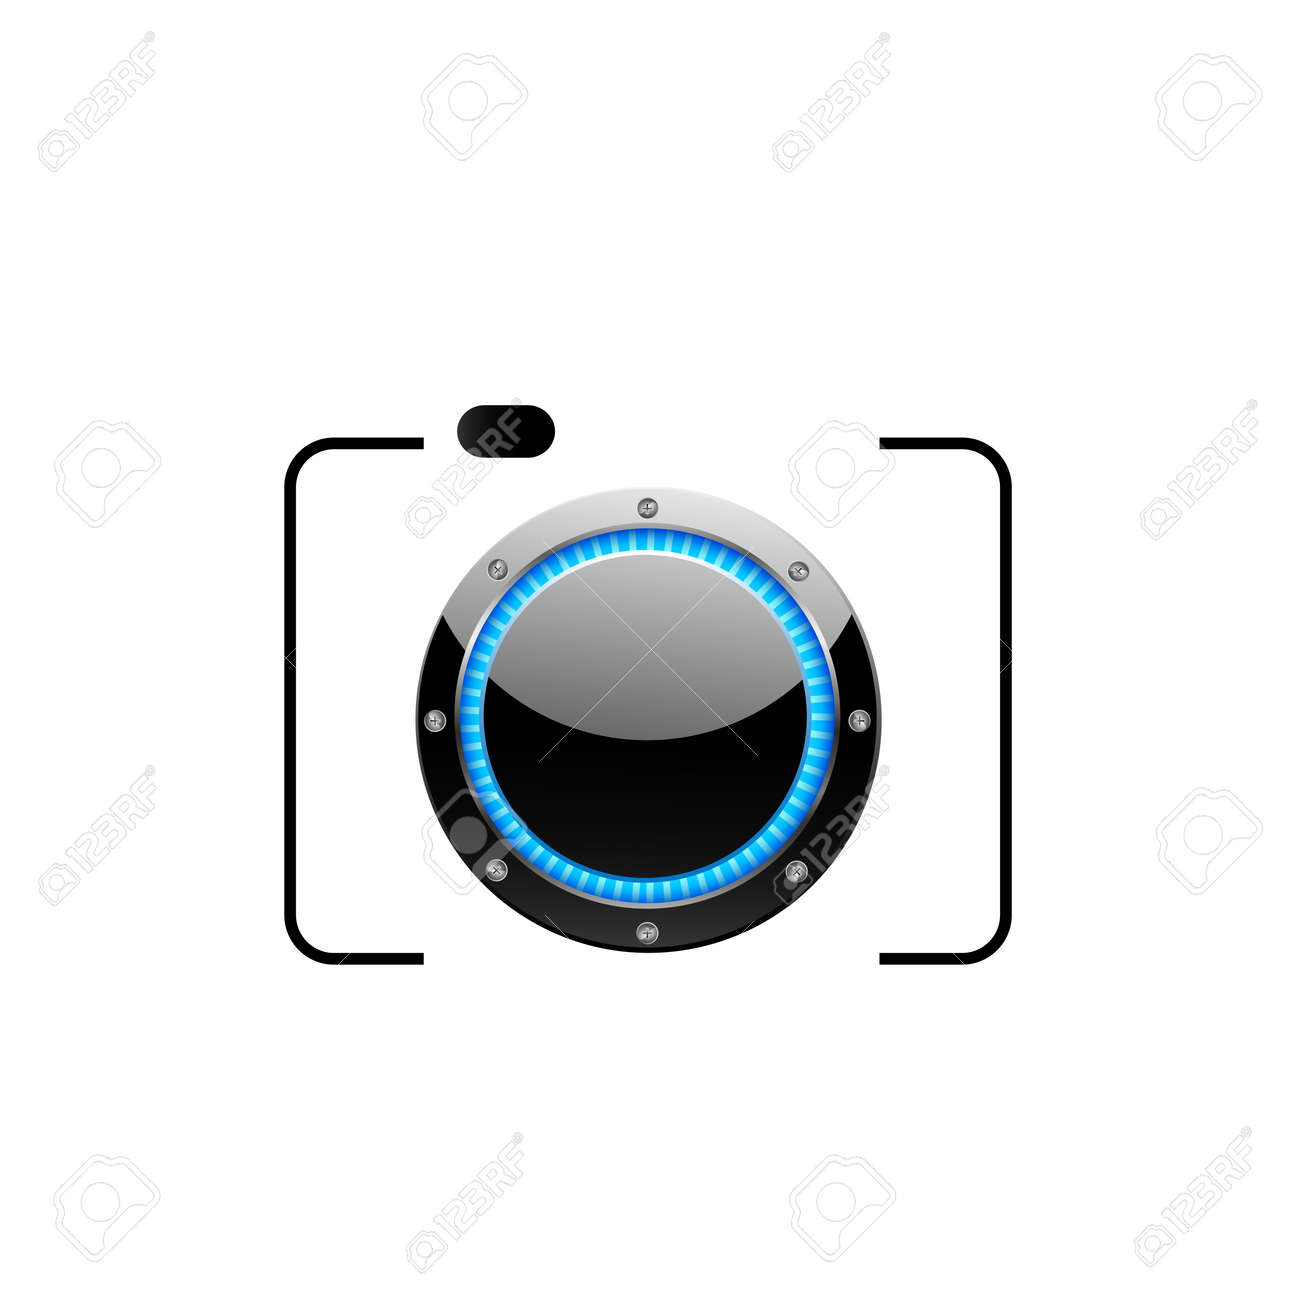 Digital camera Stock Vector - 19864692